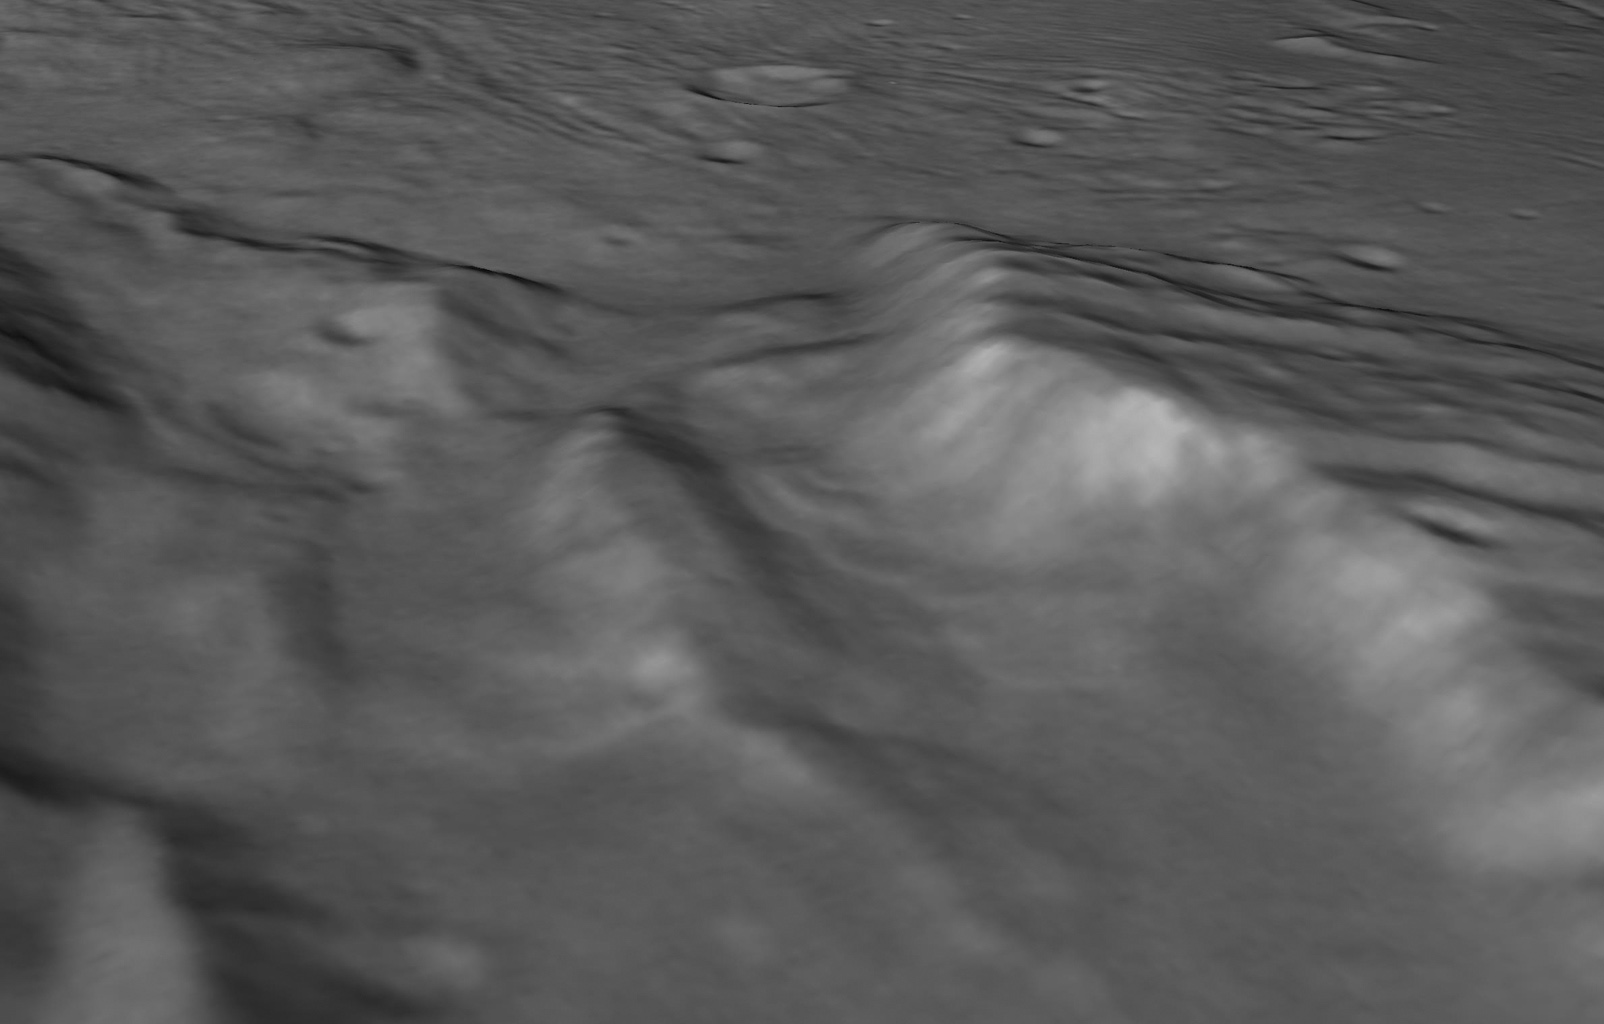 Scientists from NASA's New Horizons mission have spotted signs of long run-out landslides on Pluto's largest moon, Charon. This perspective view is of Charon's informally named Serenity Chasma.